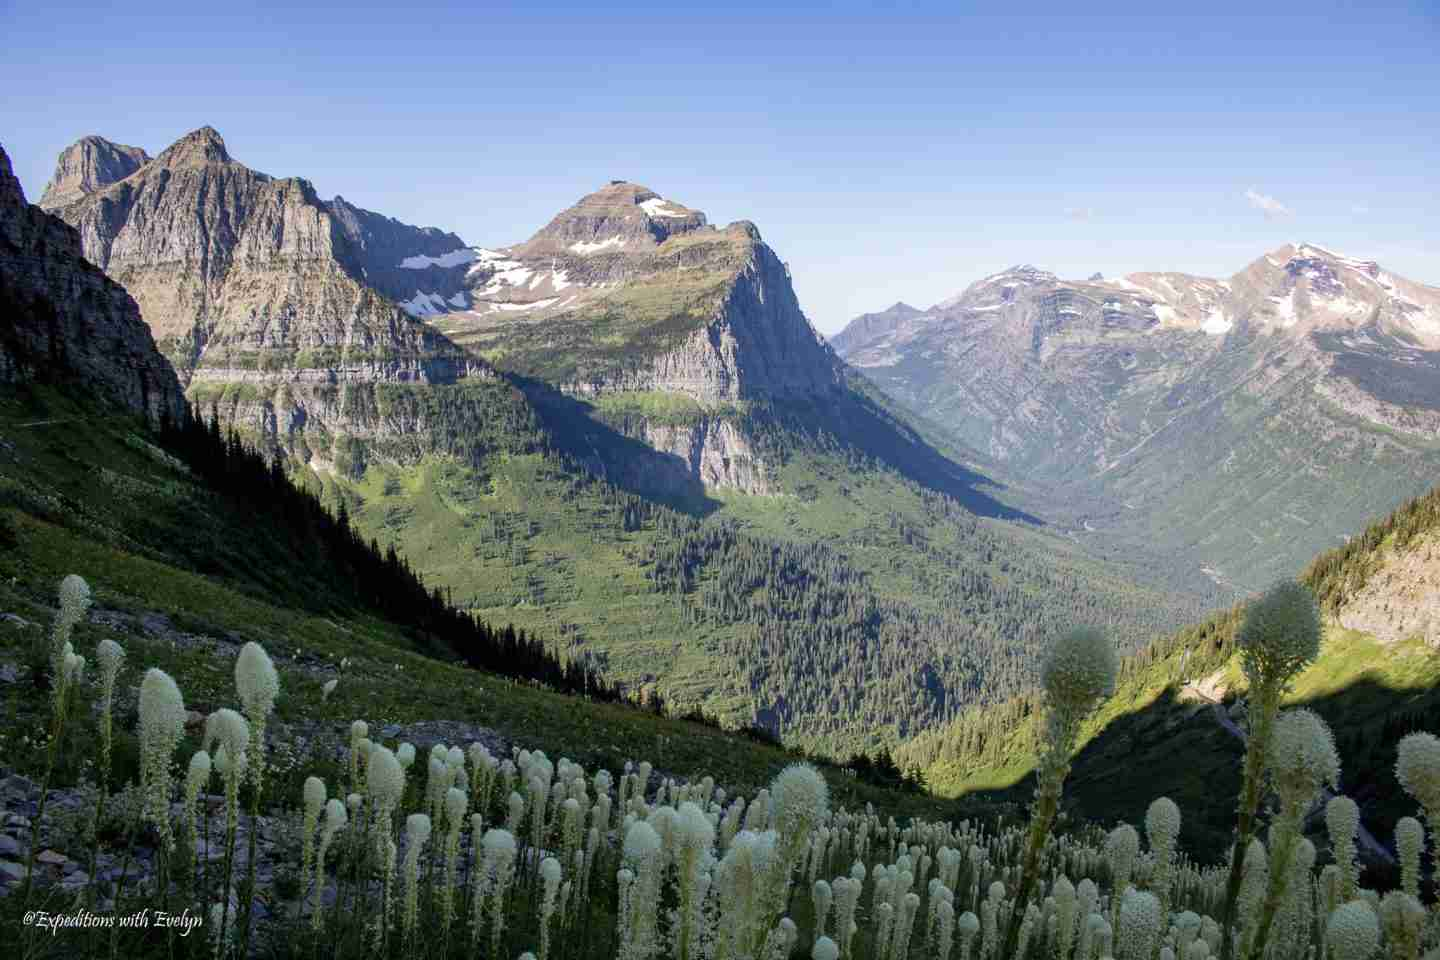 Tall mountains covered in greenery reach to the sky and are speckled with bear grass and wildflowers at Glacier National Park.